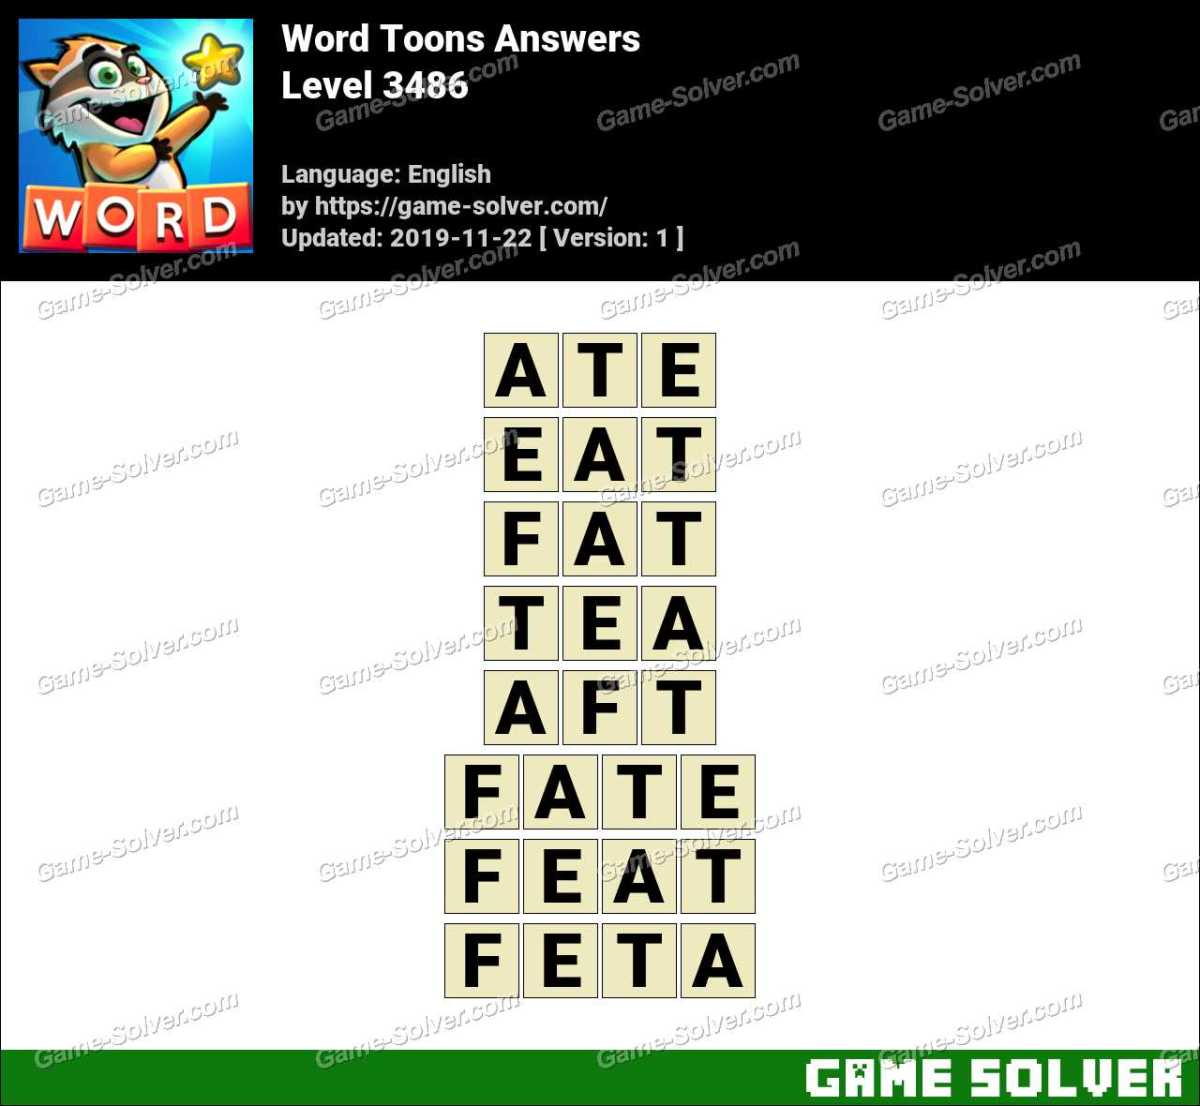 Word Toons Level 3486 Answers